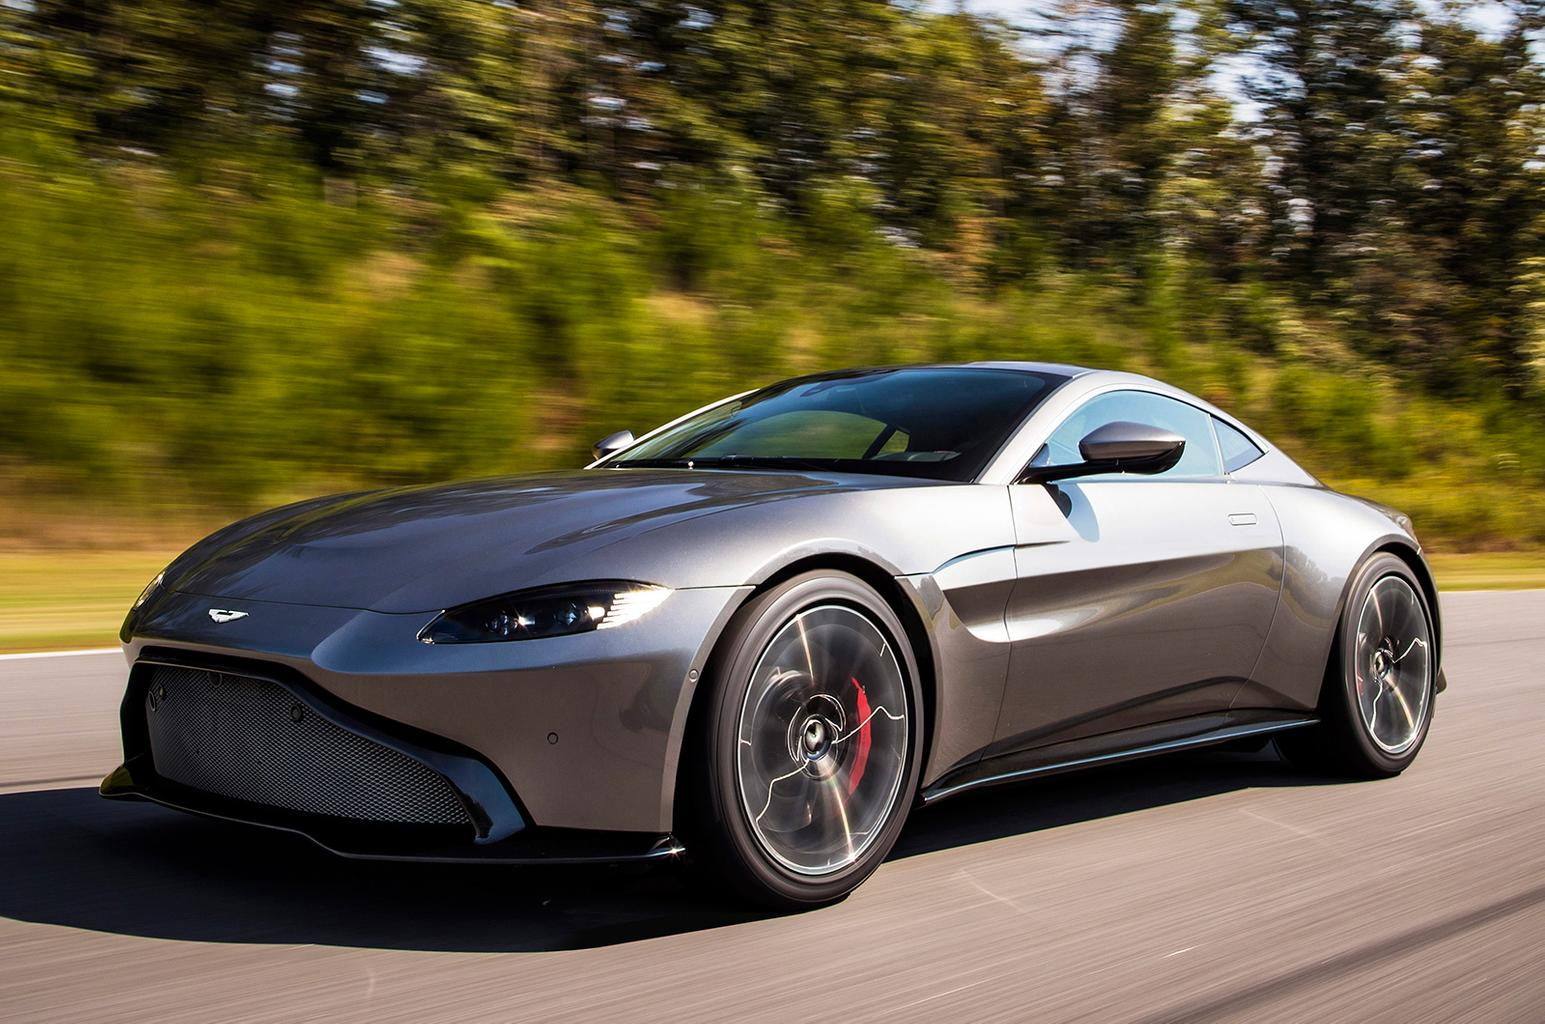 Aston Martin Vantage Revealed Price Specs And Release Date - How much does a aston martin cost